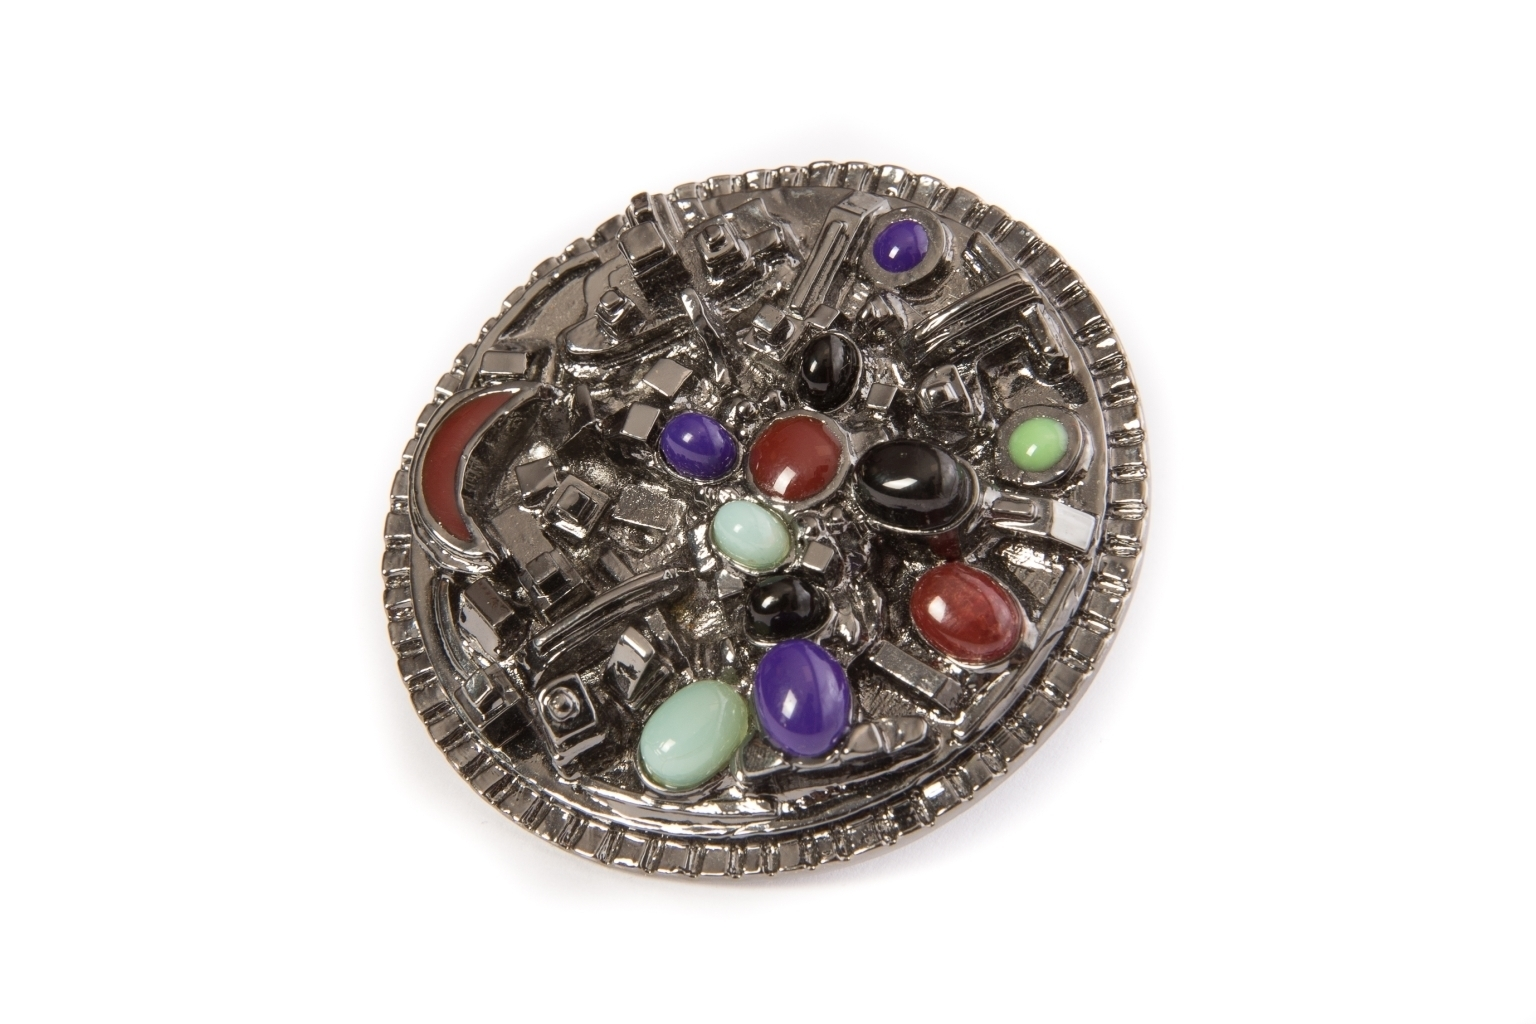 Luxury large ring with Gripoix glass by Chanel